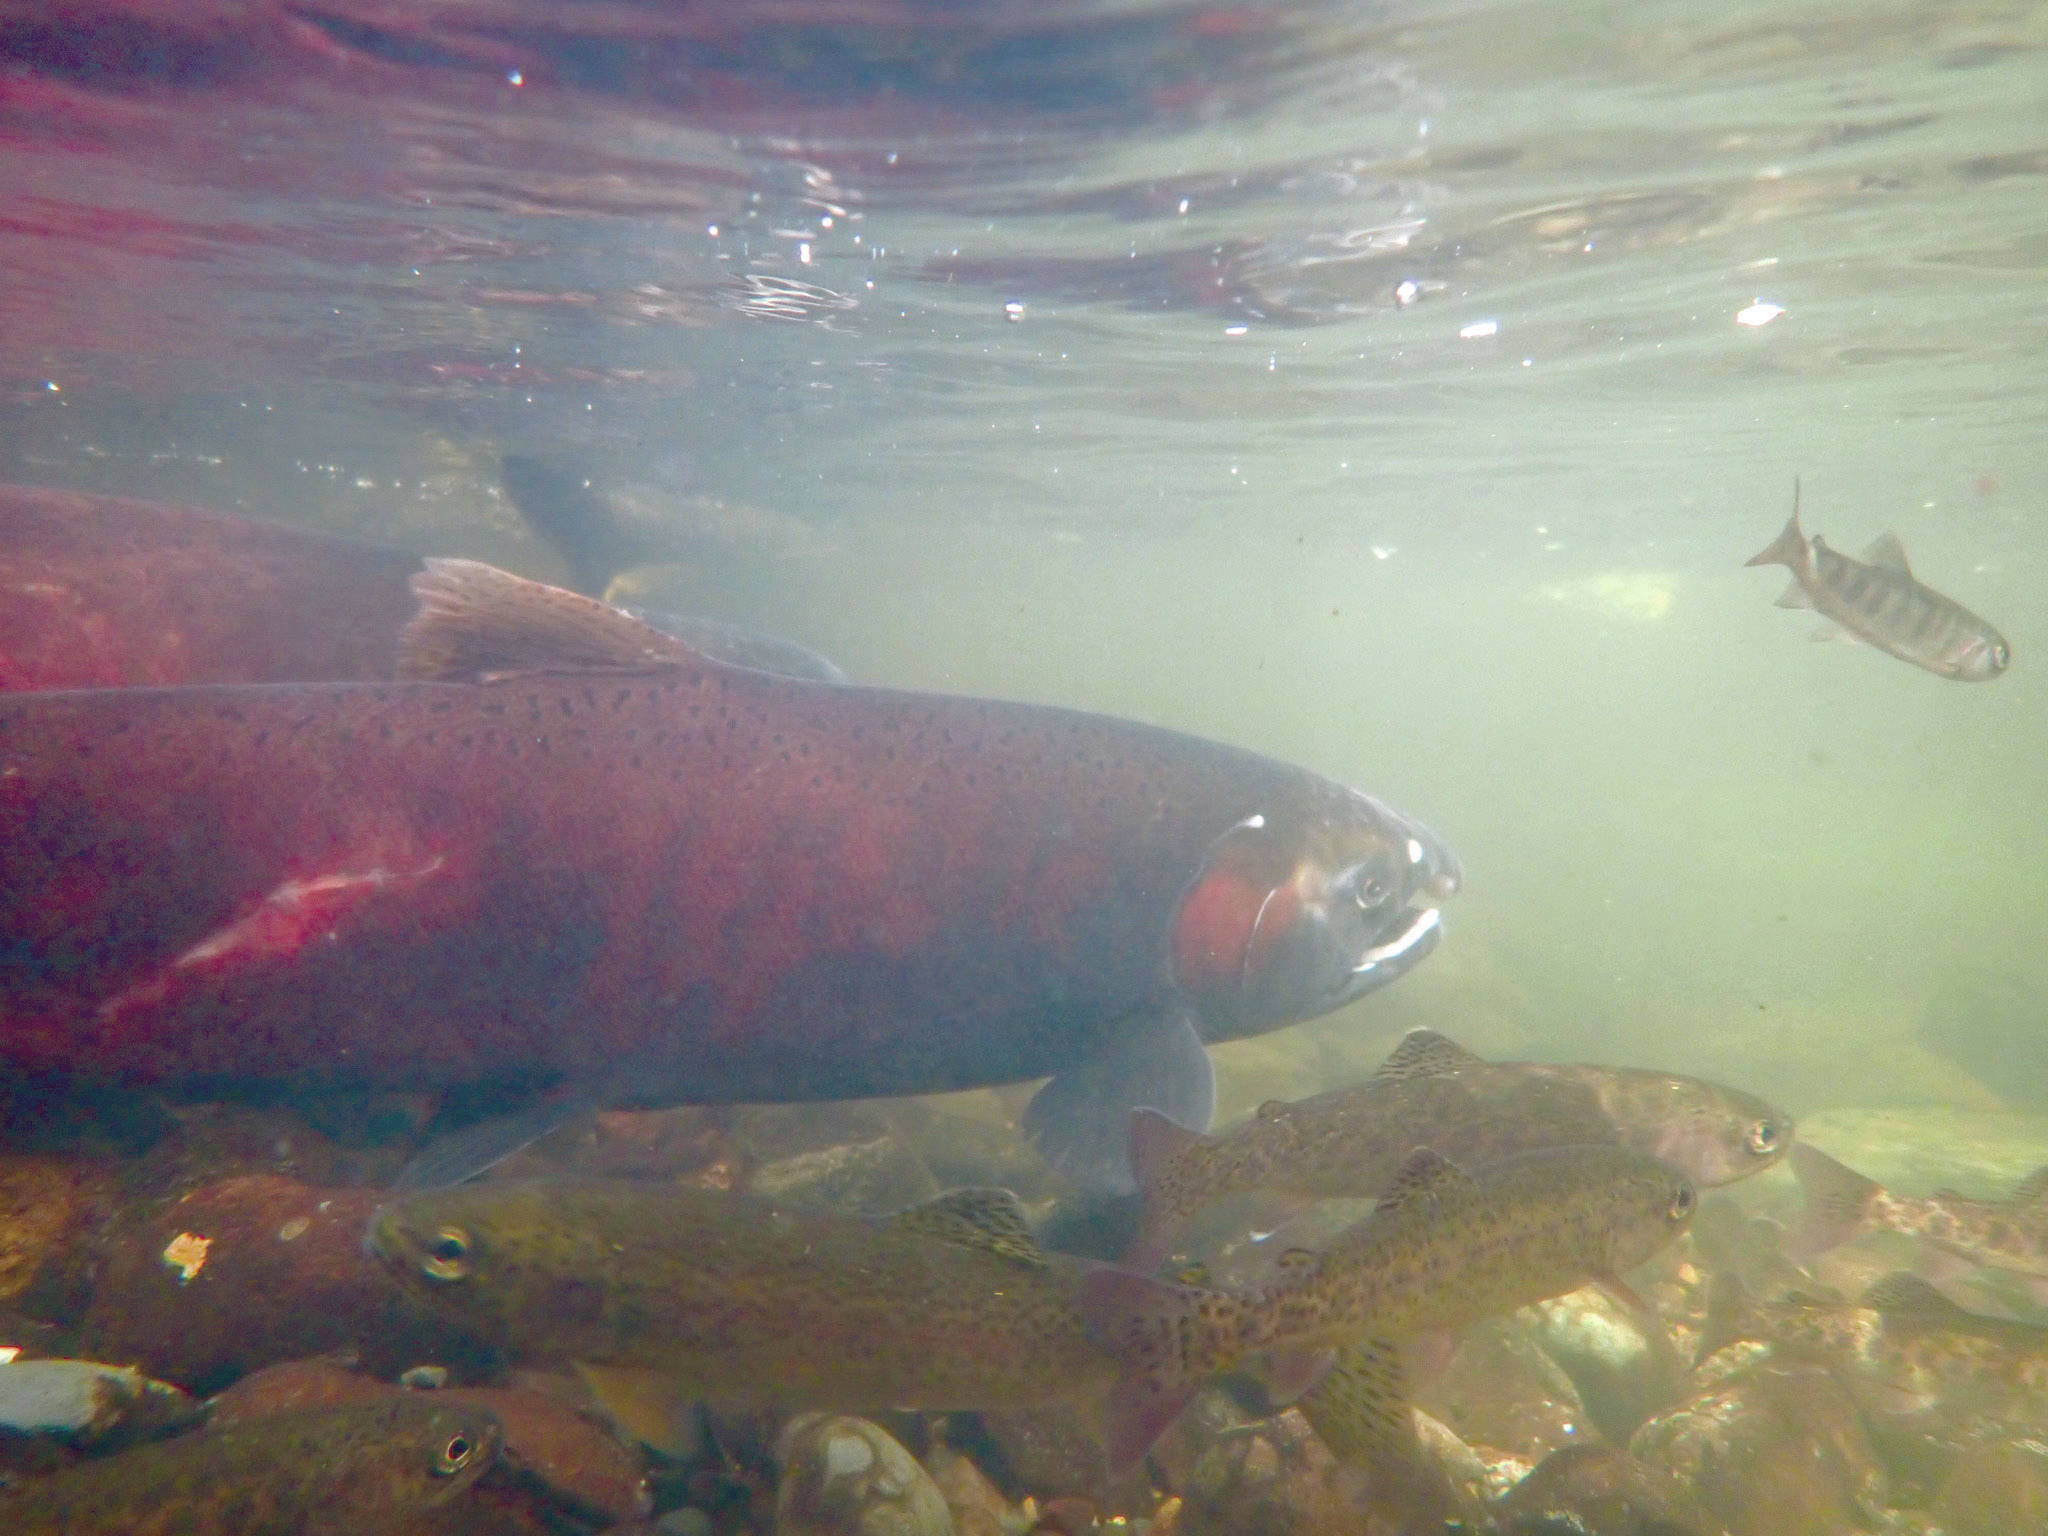 Silver salmon swim in Sucker Creek on Sept. 18, 2020. Surface streams on the Kenai Peninsula and fish in them have far less arsenic in them than in some well water in the area. (Photo by Matt Bowser/Kenai National Wildlife Refuge)